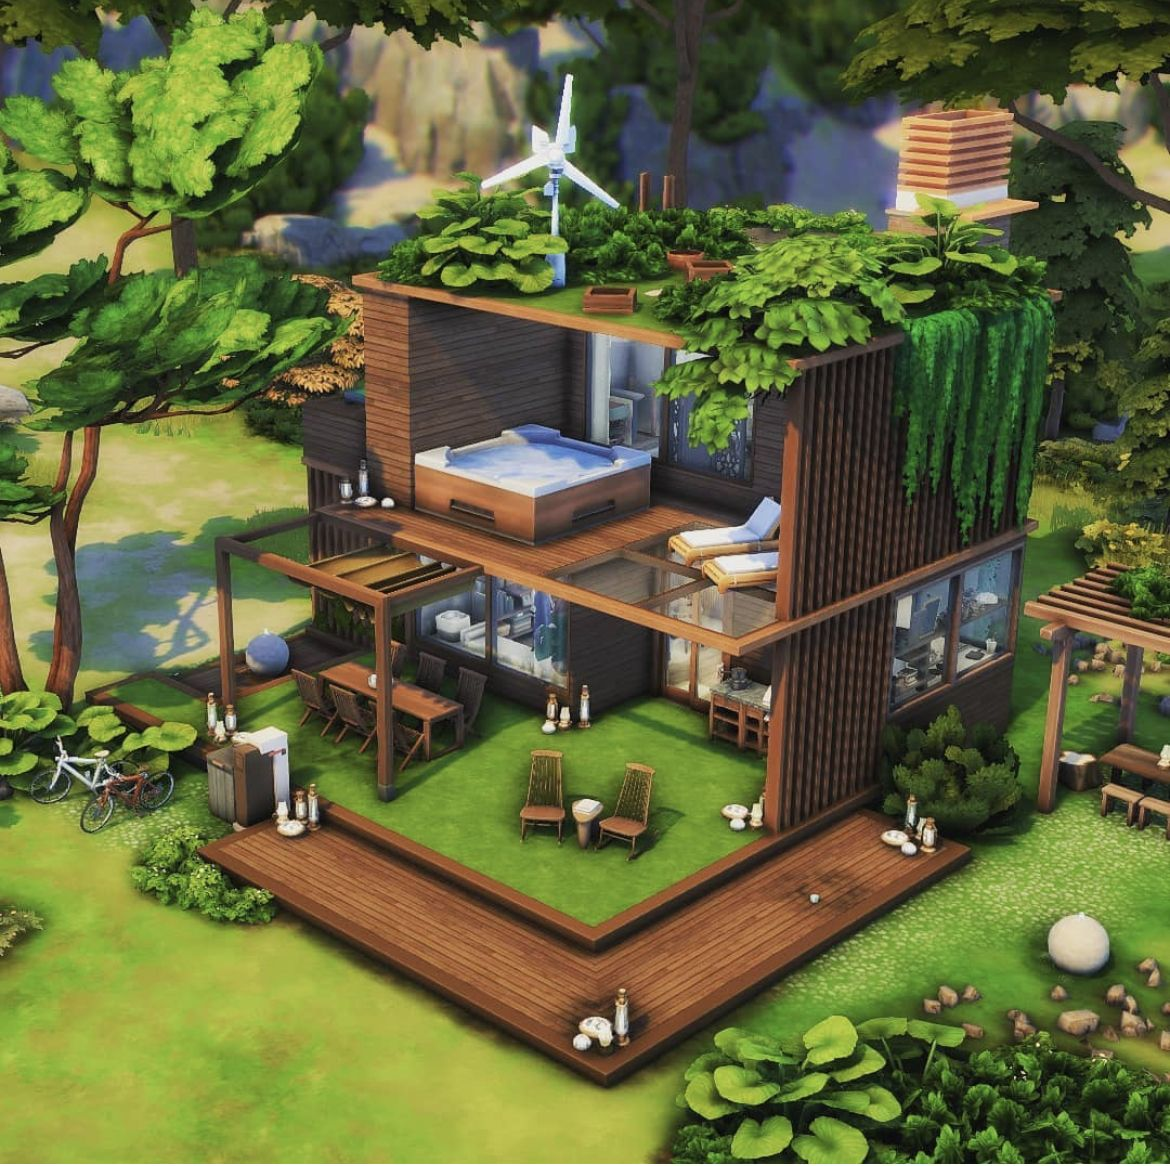 Tiny House Kitchenideas: Pin By Anya Wilhelm On Sims In 2021